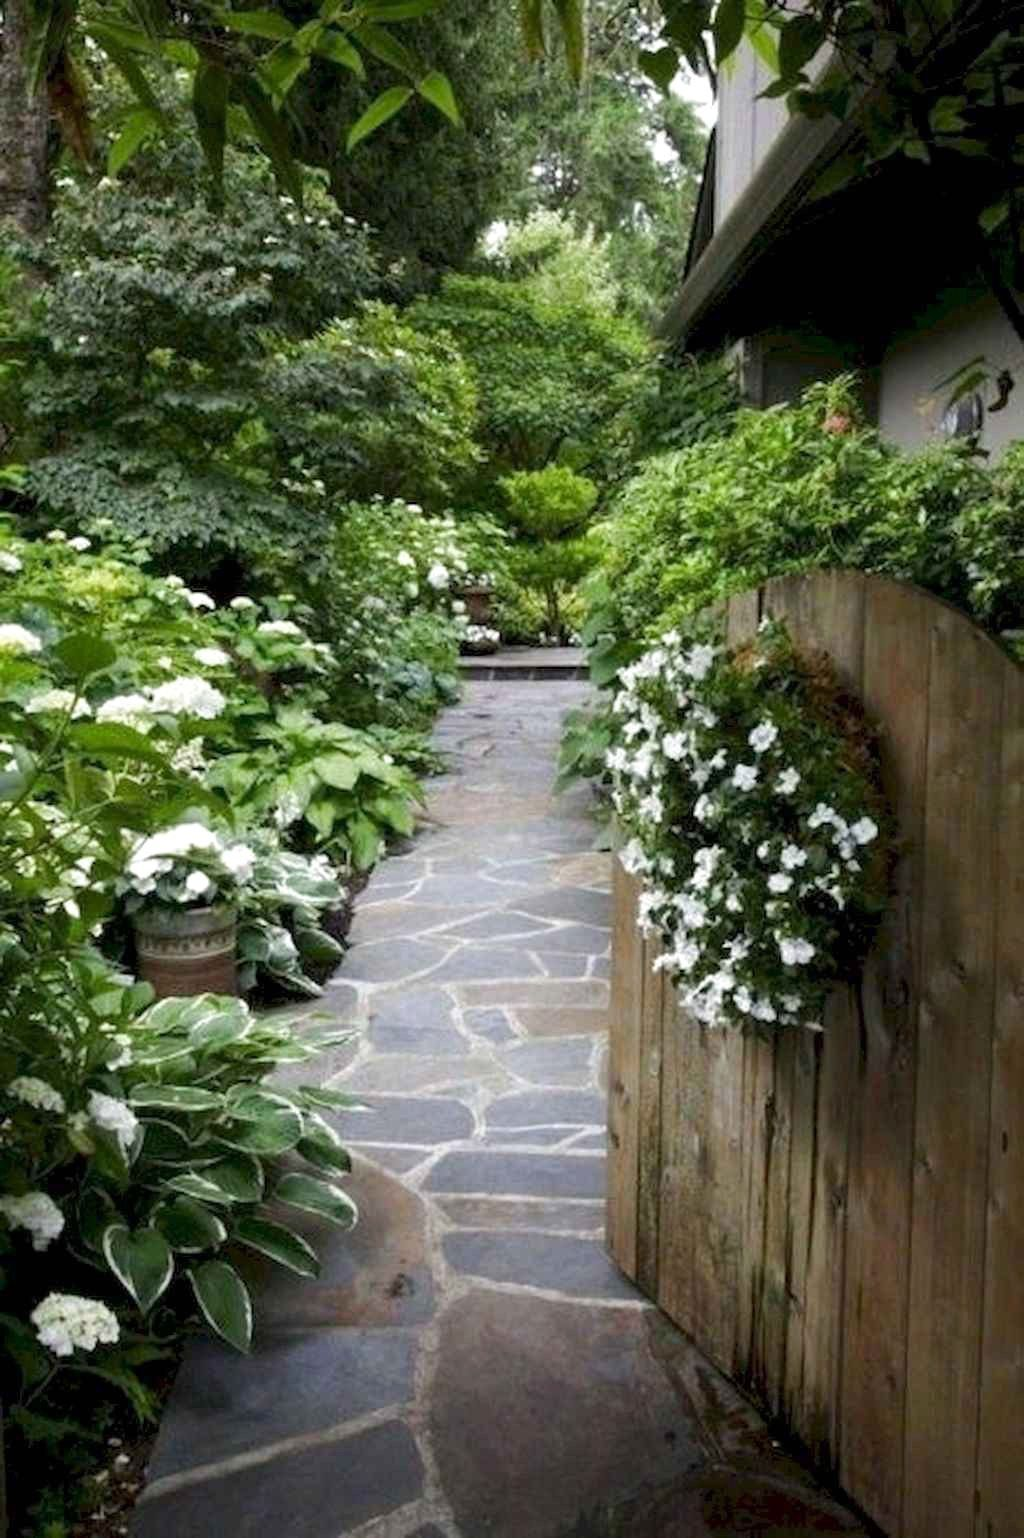 ✔70 Favourite Side House Garden Landscaping Decoration Ideas With Rocks - Home & Garden